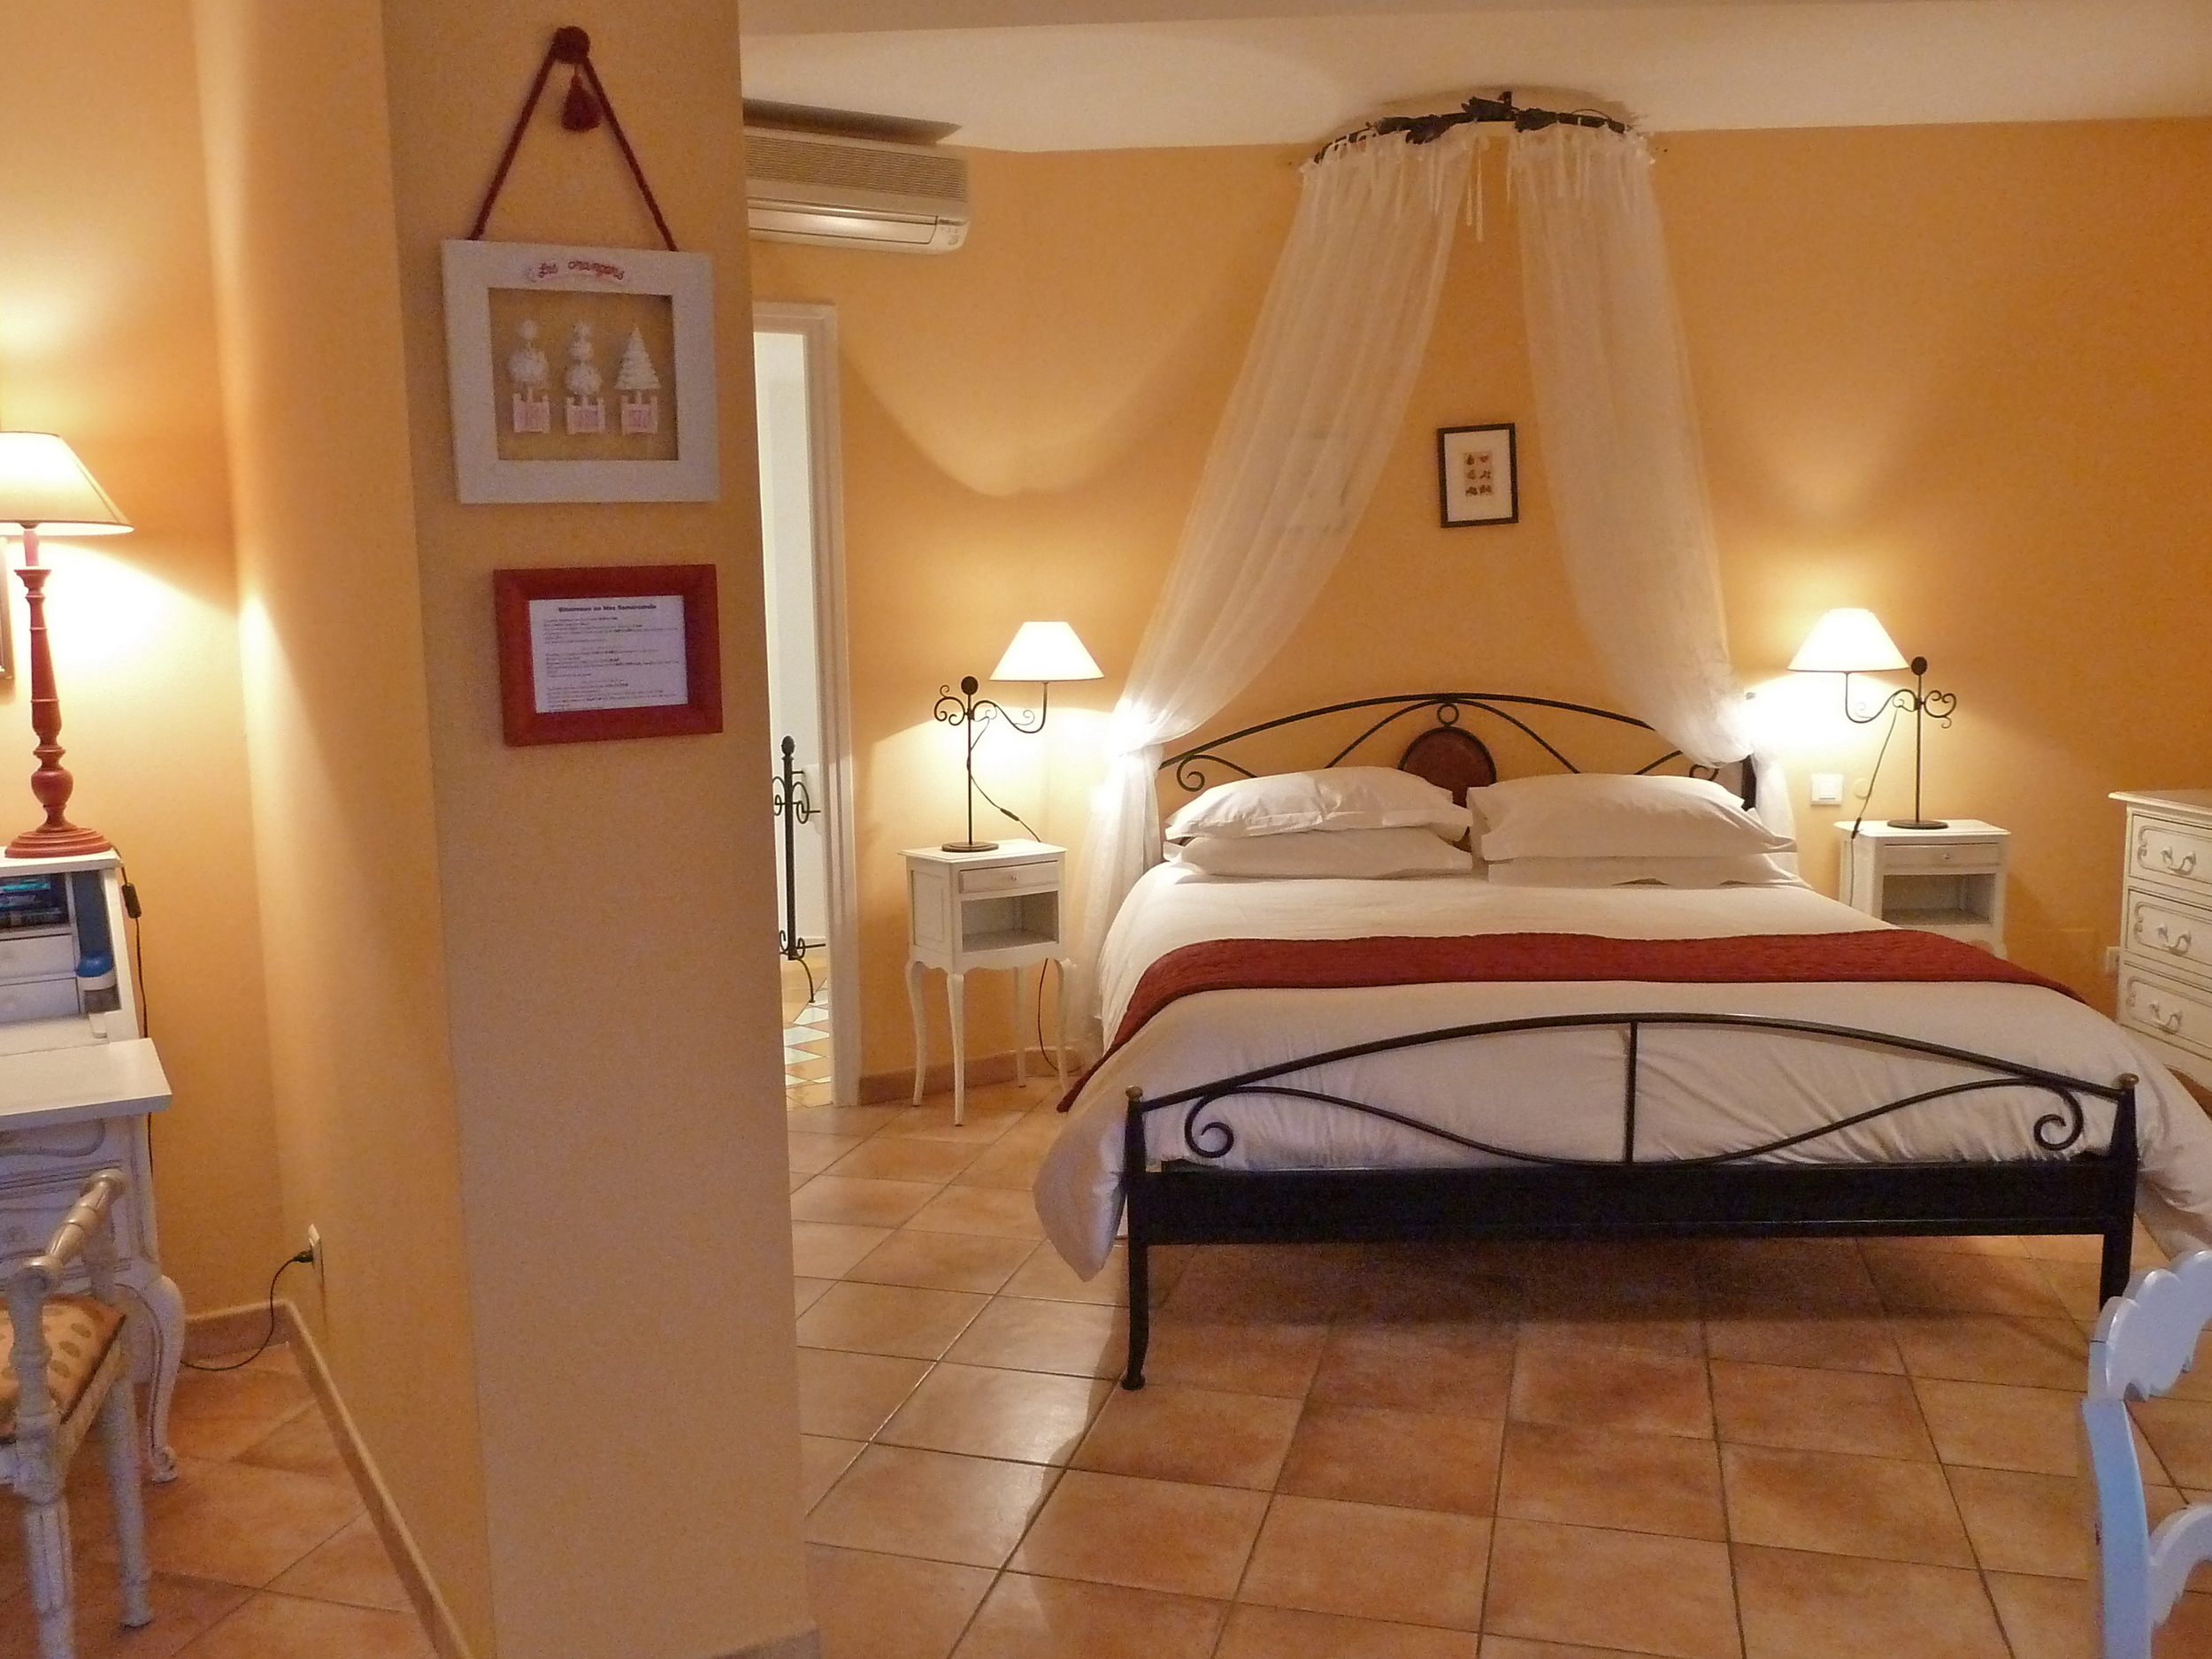 Chambre d'hote Manosque I with double-bed